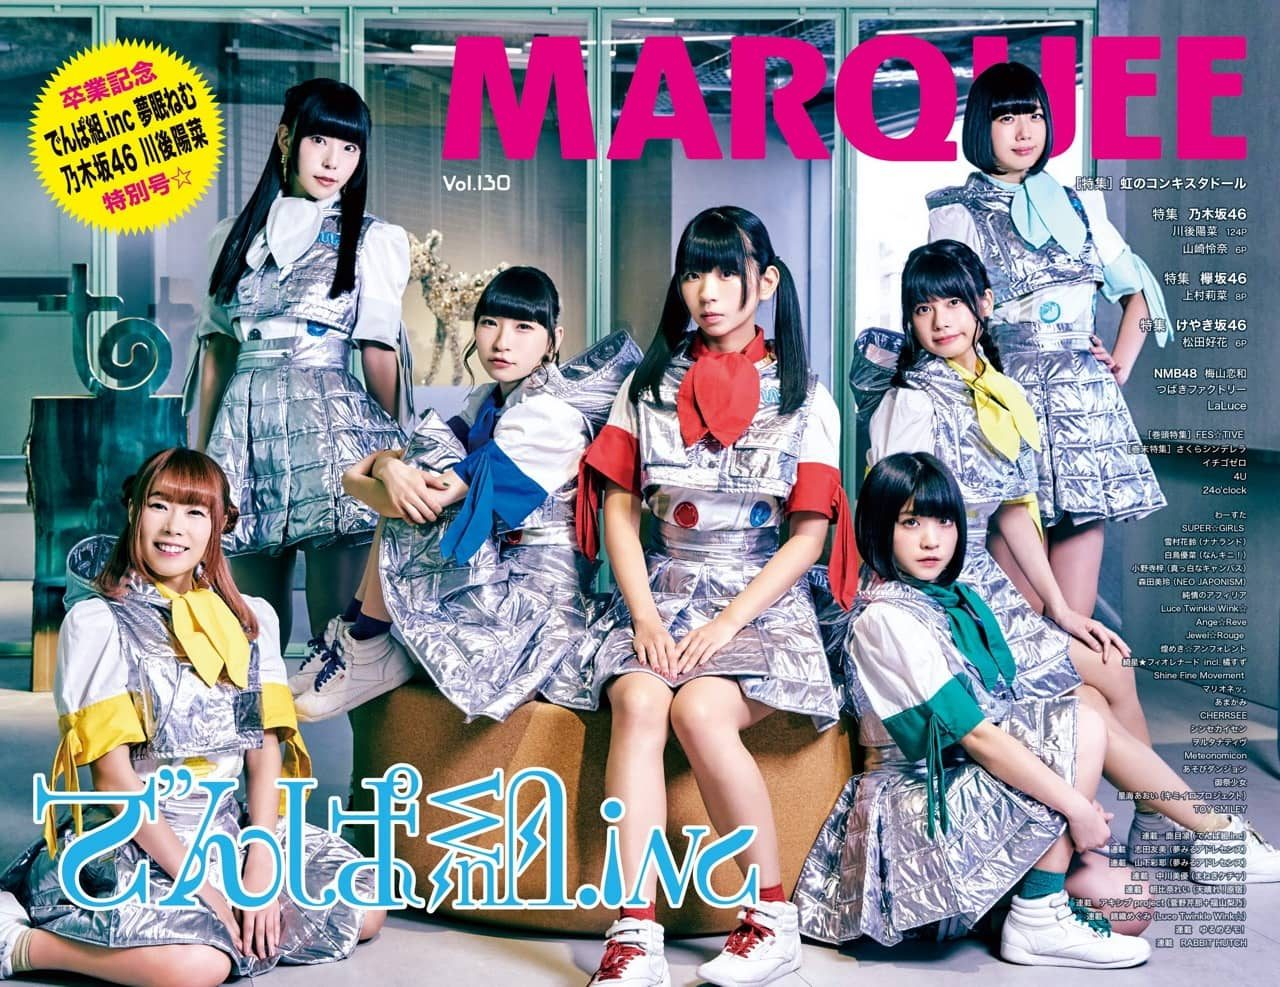 MARQUEE(マーキー) Vol.130